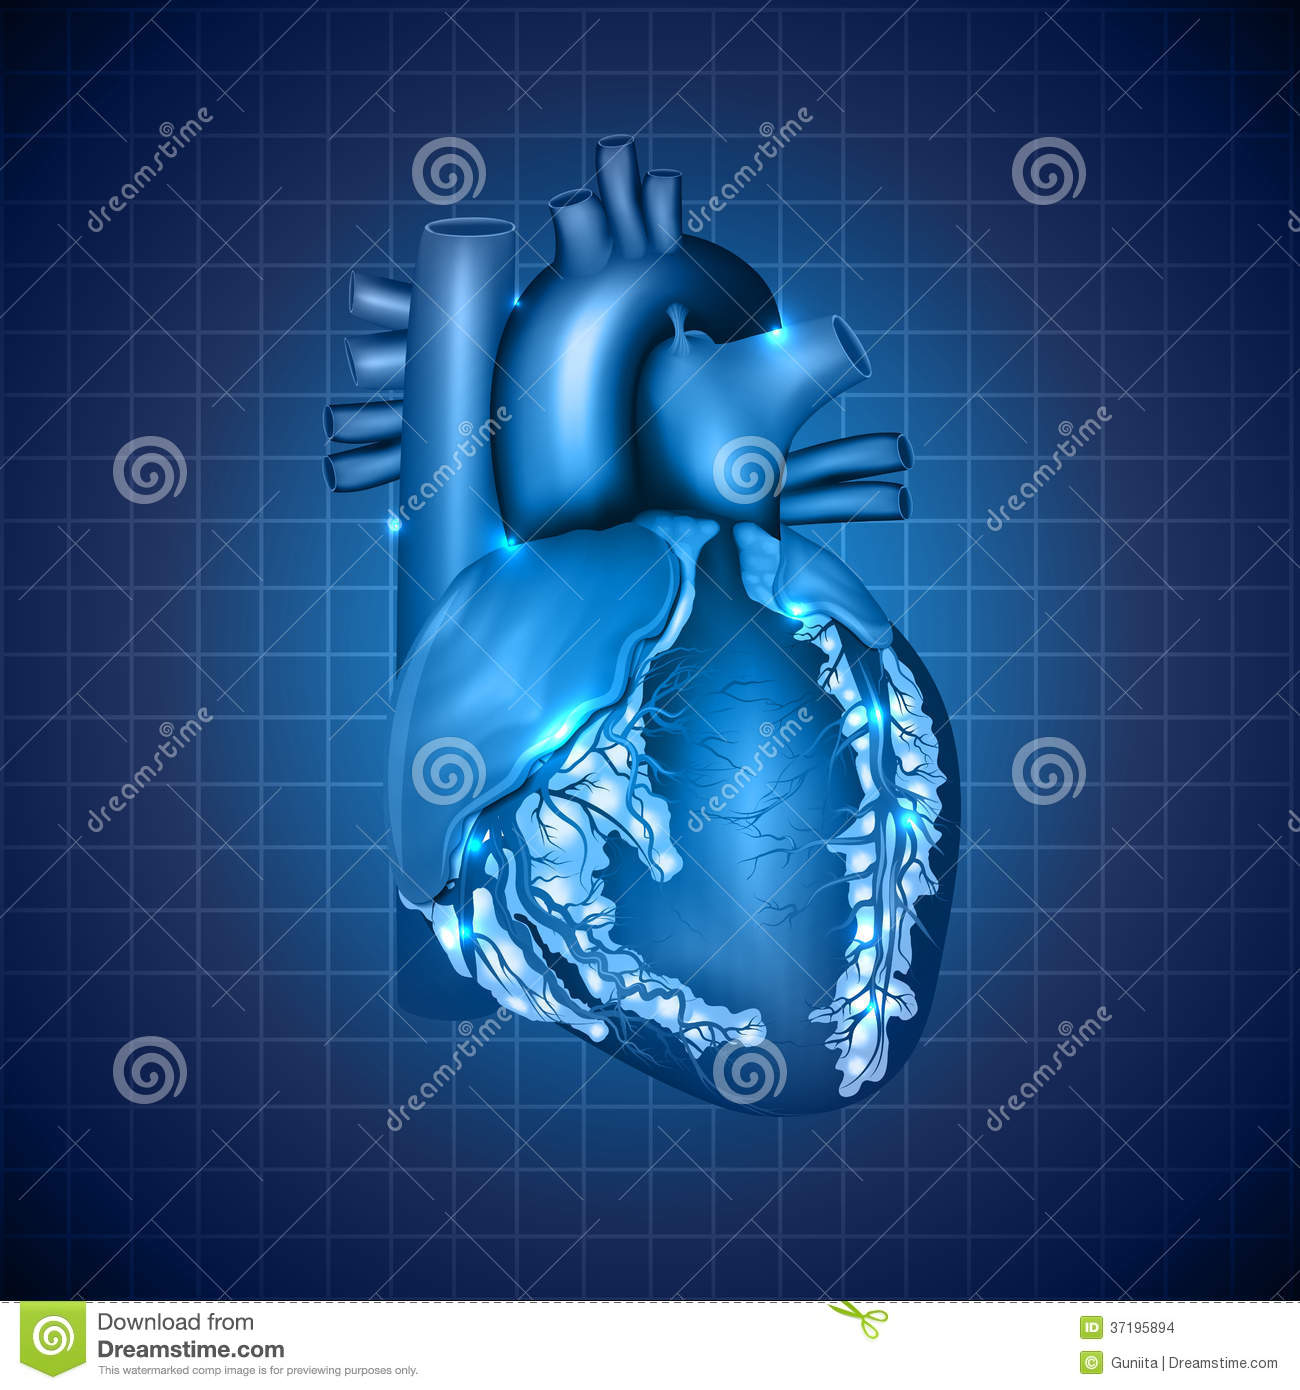 Human Heart Medical Illustration Stock Vector